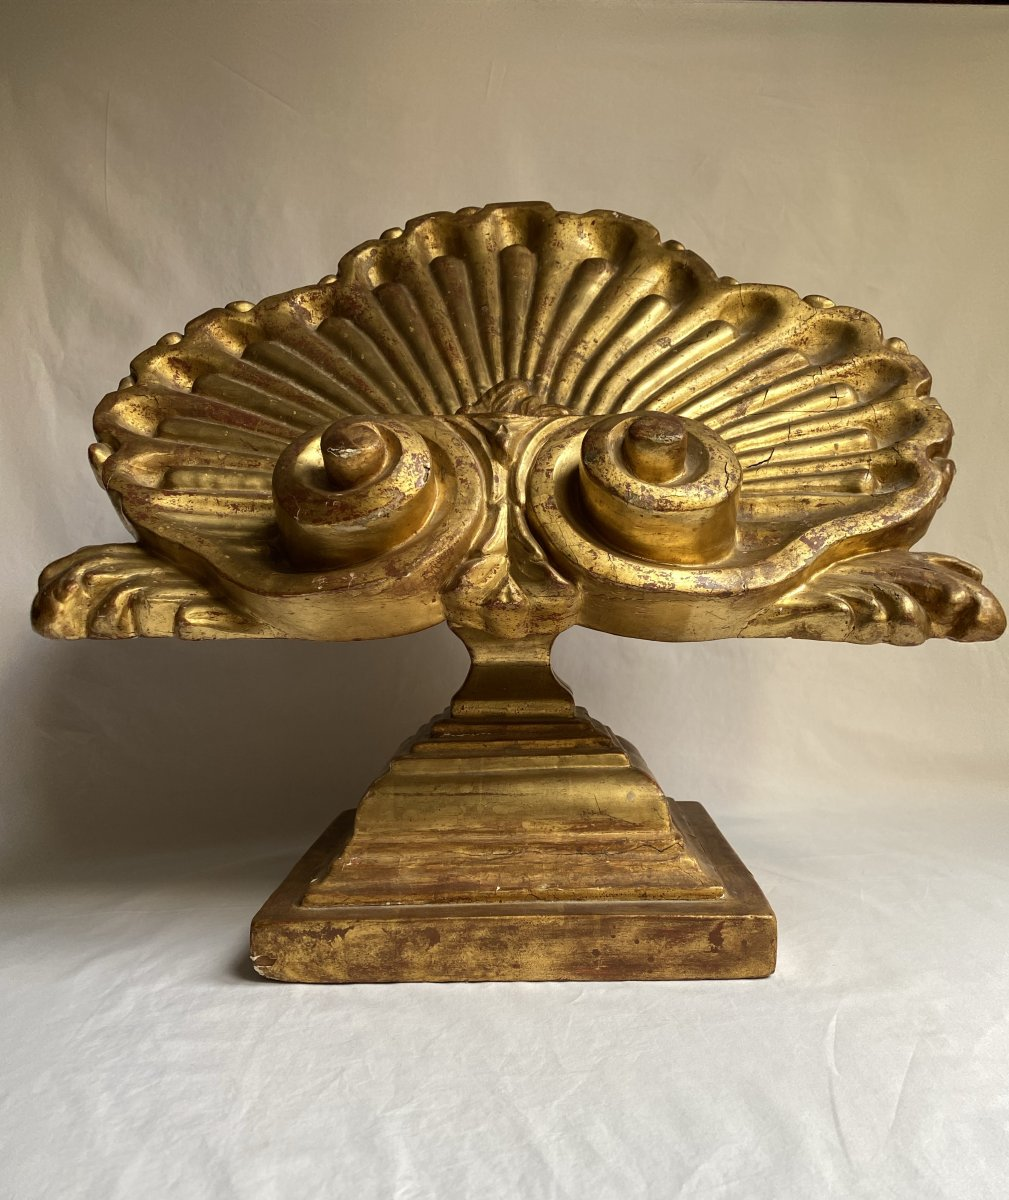 Large Lectern In The Shape Of A Shell - Golden Wood - Italy XVII - XVIII-photo-2